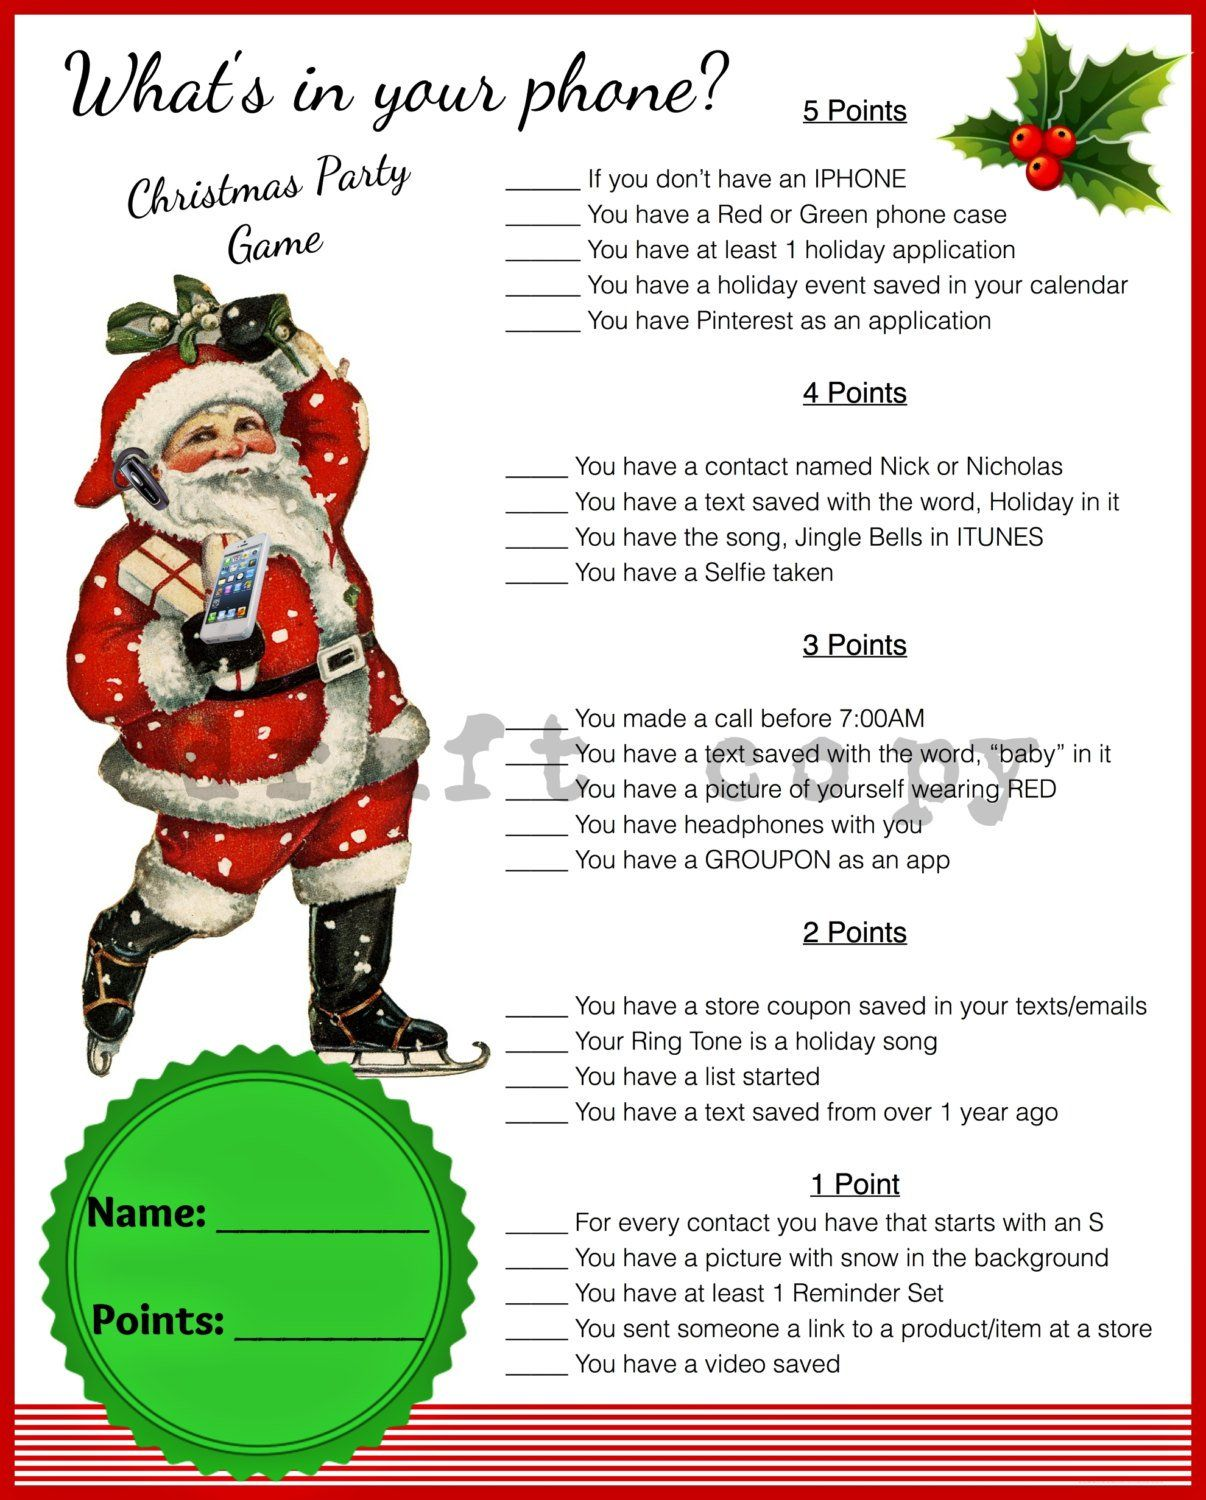 Christmas GameWhats in your phoneInstant Download Etsy